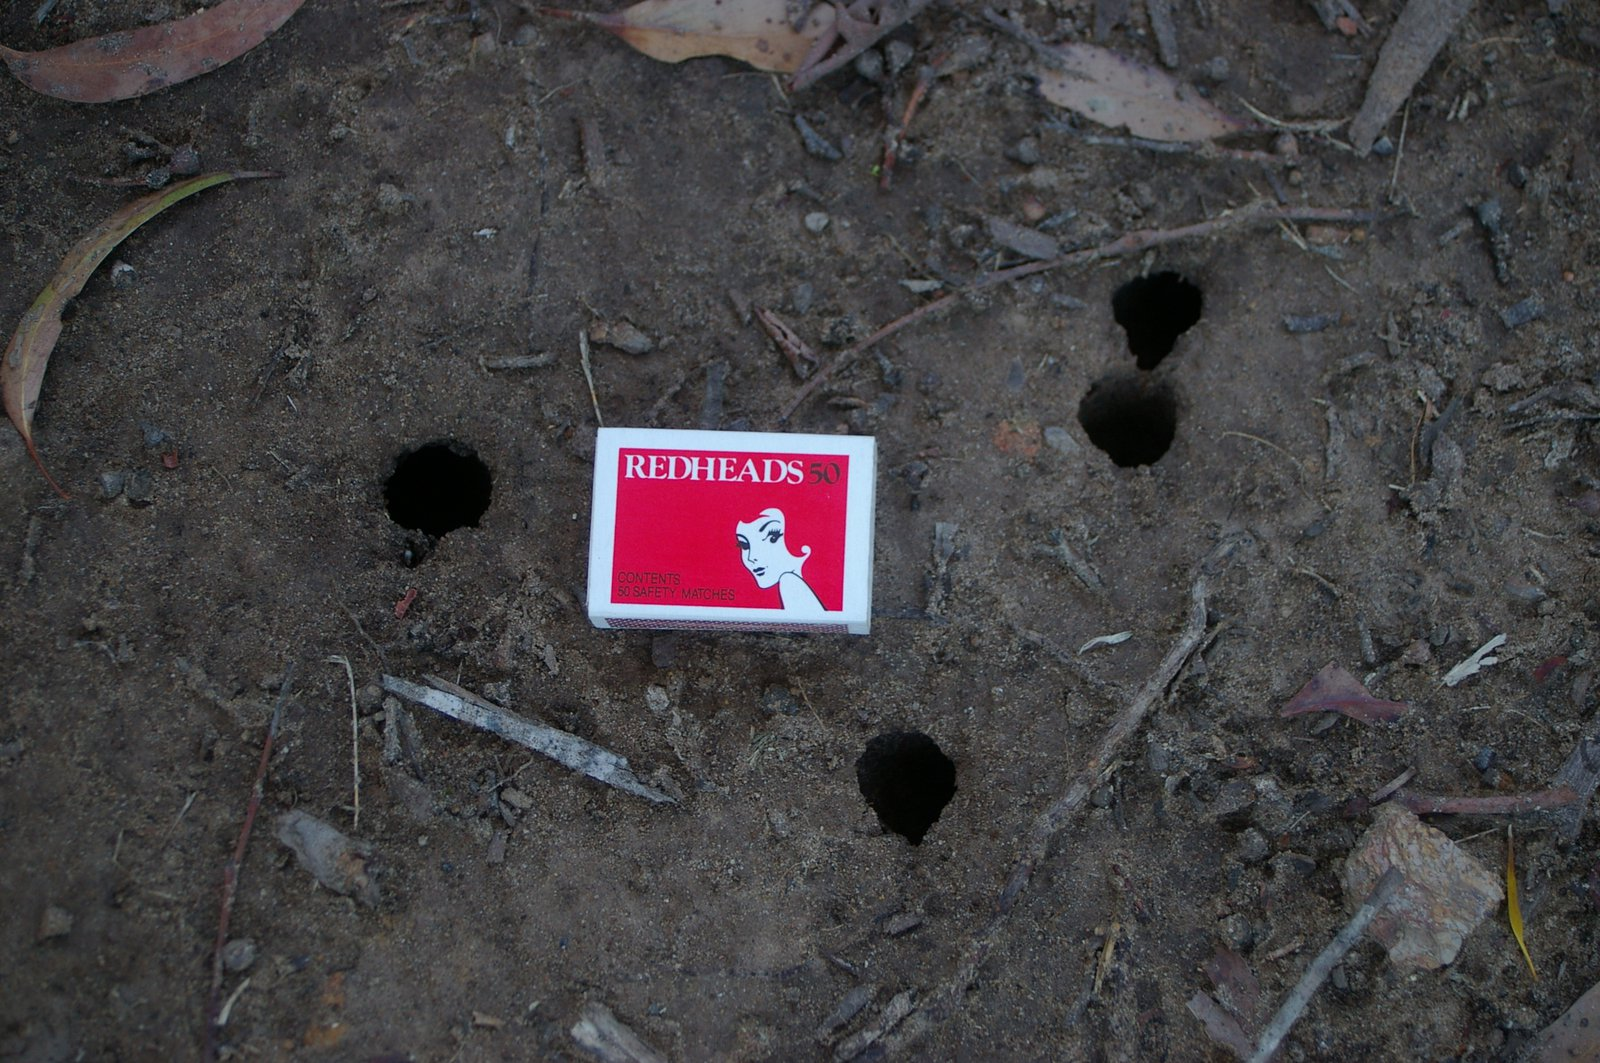 Holes made by Double Drummer cicadas, Thopha saccata, in Wedderburn, NSW.